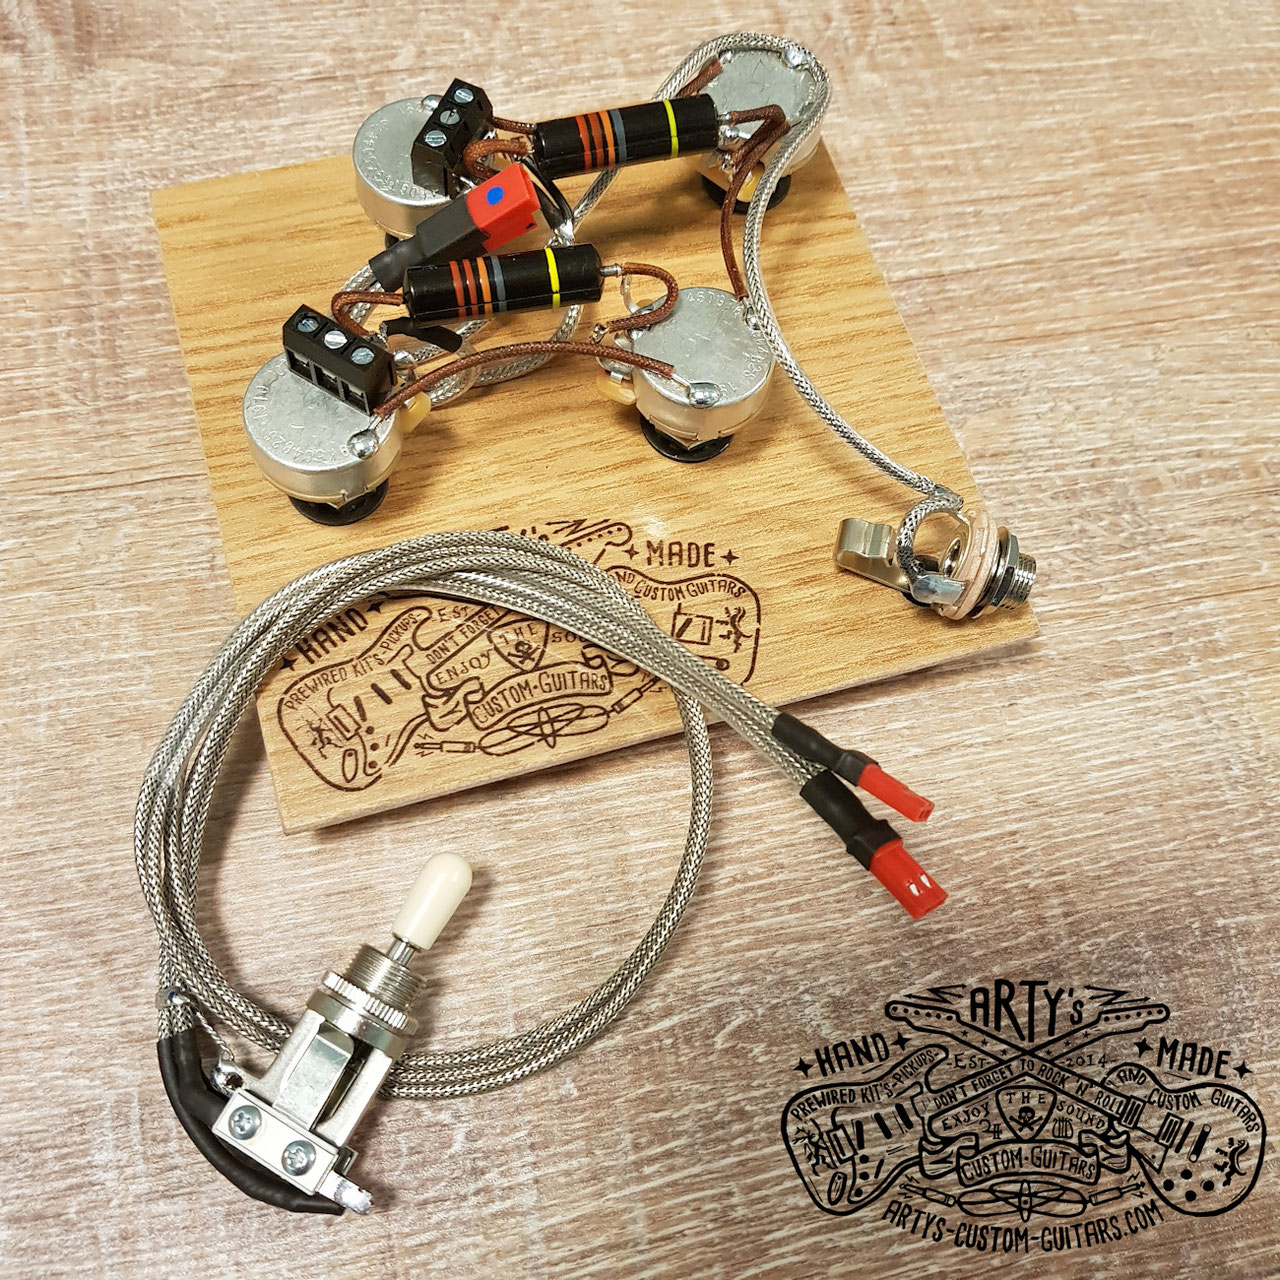 SOLDERLESS WIRING HARNESS Gibson Les Paul 50's - Arty's Custom GuitarsArty's Custom Guitars